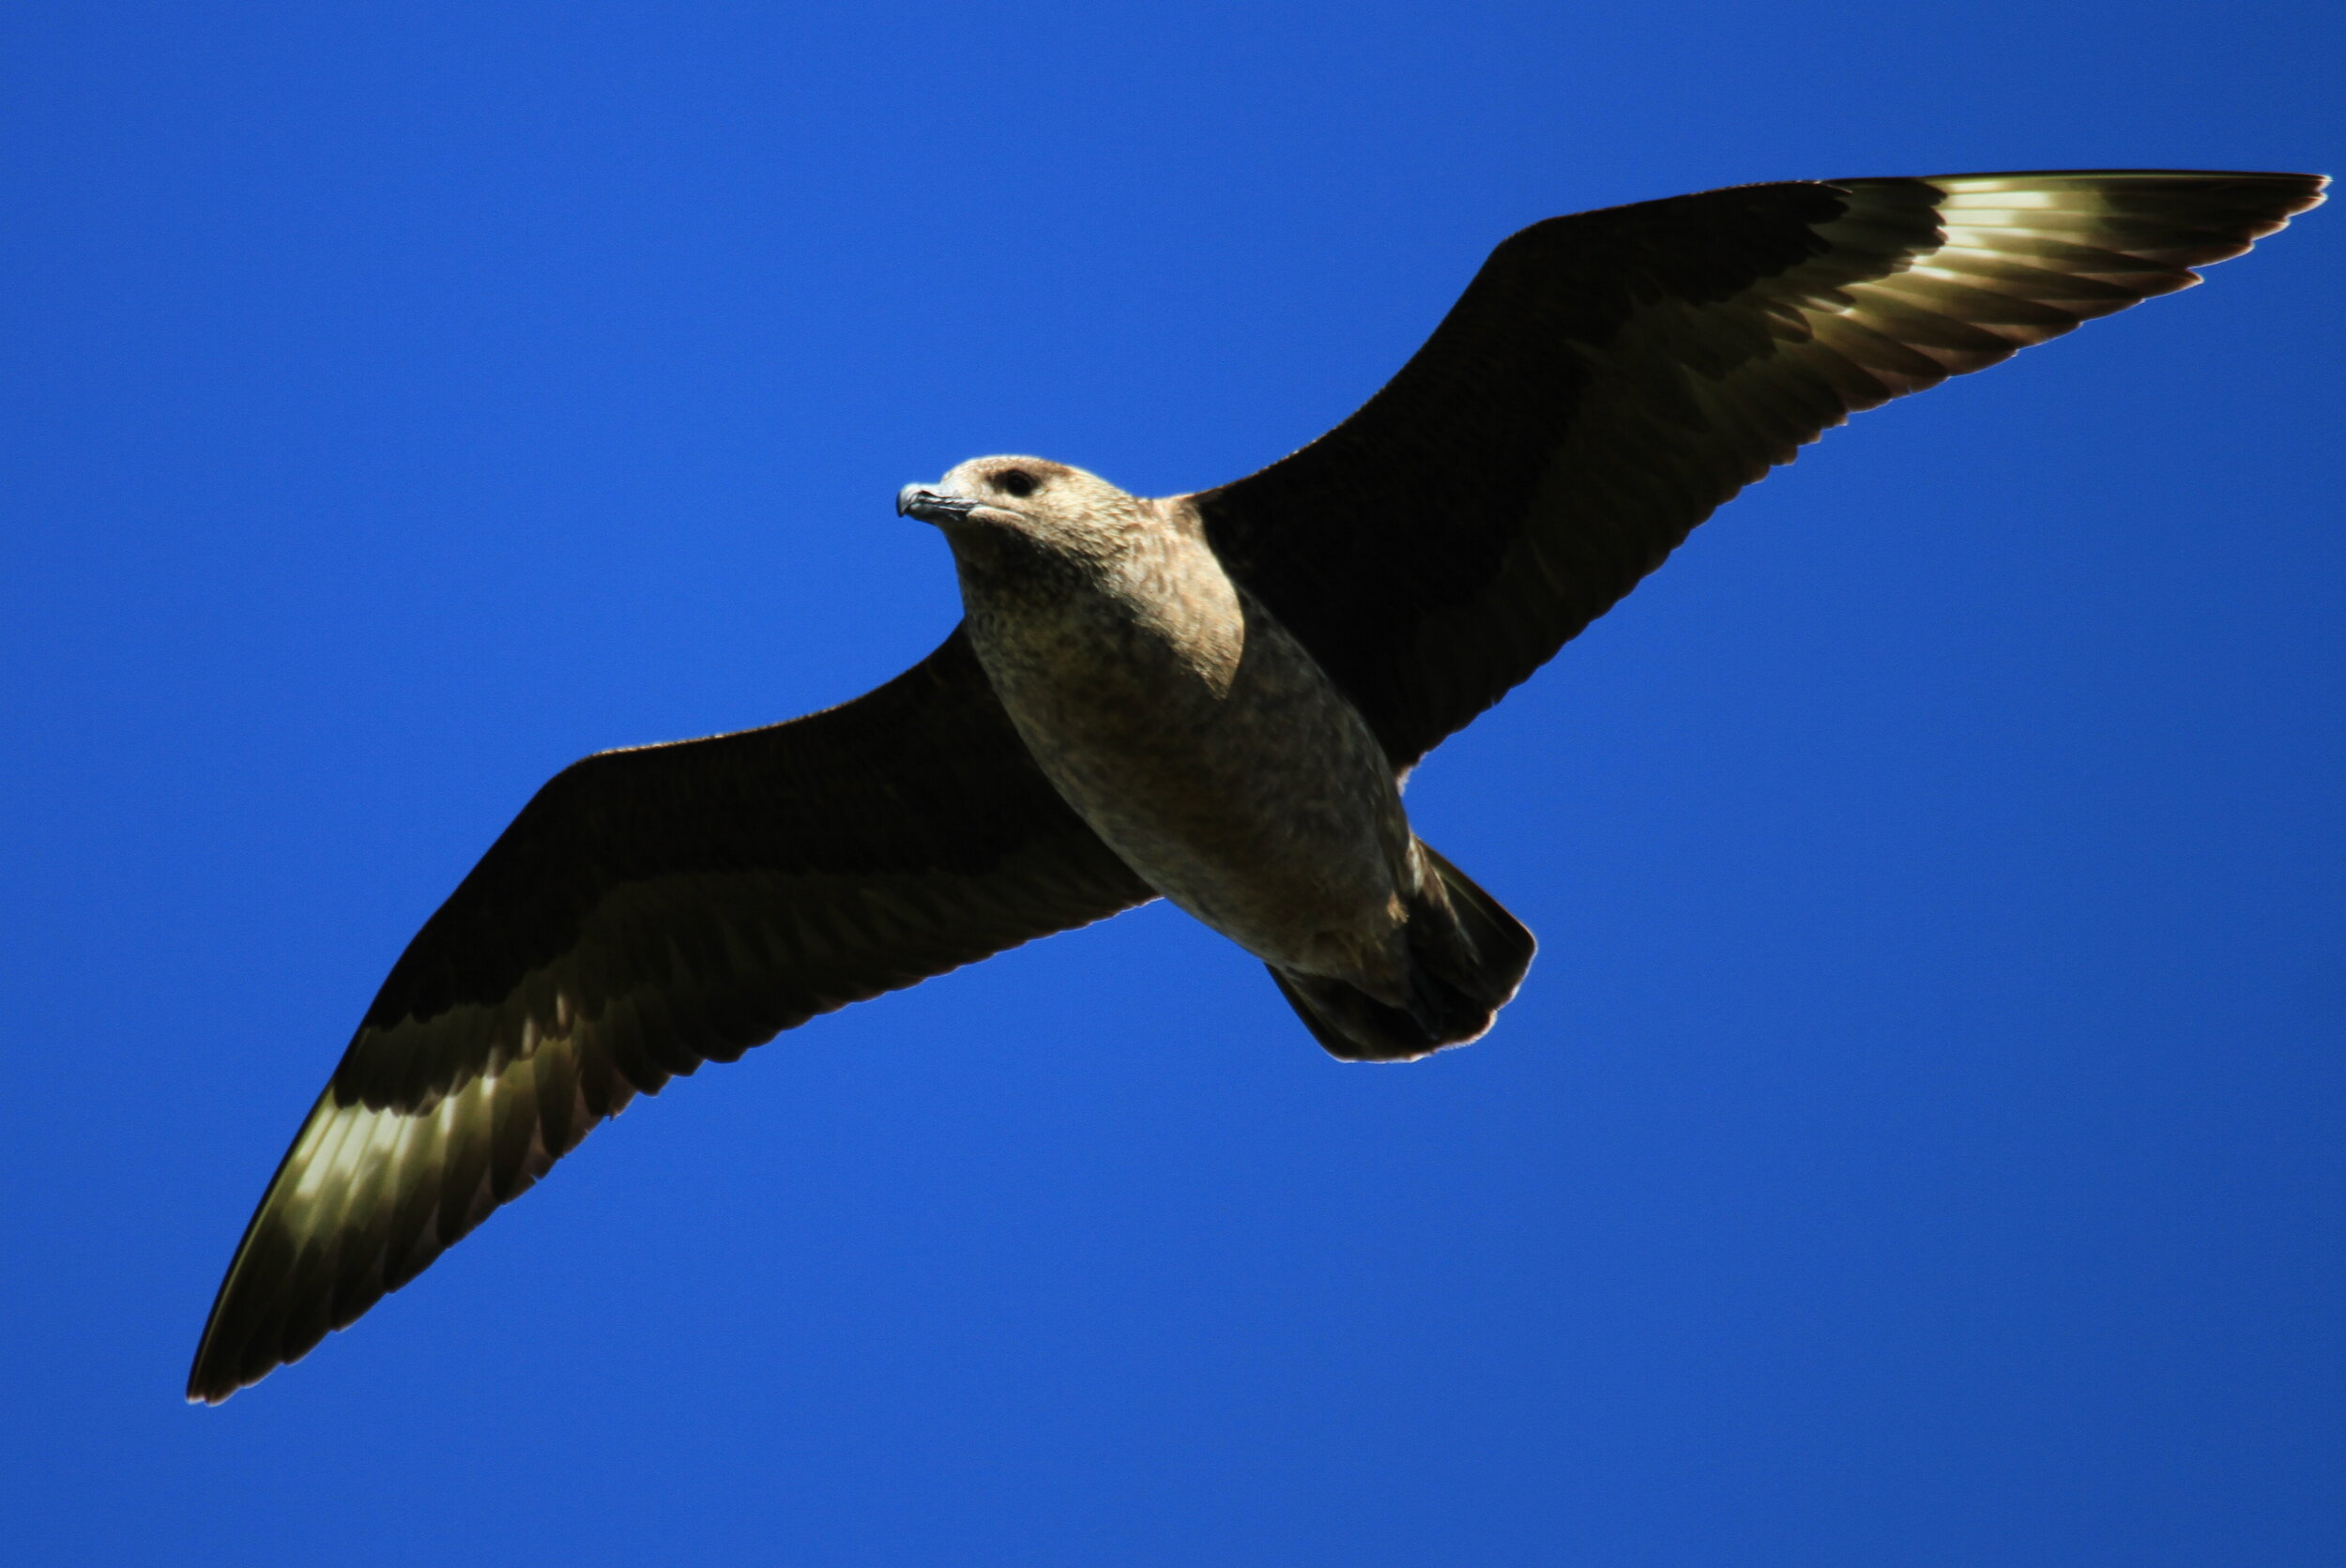 Great Skuas are summer visitors to our island.